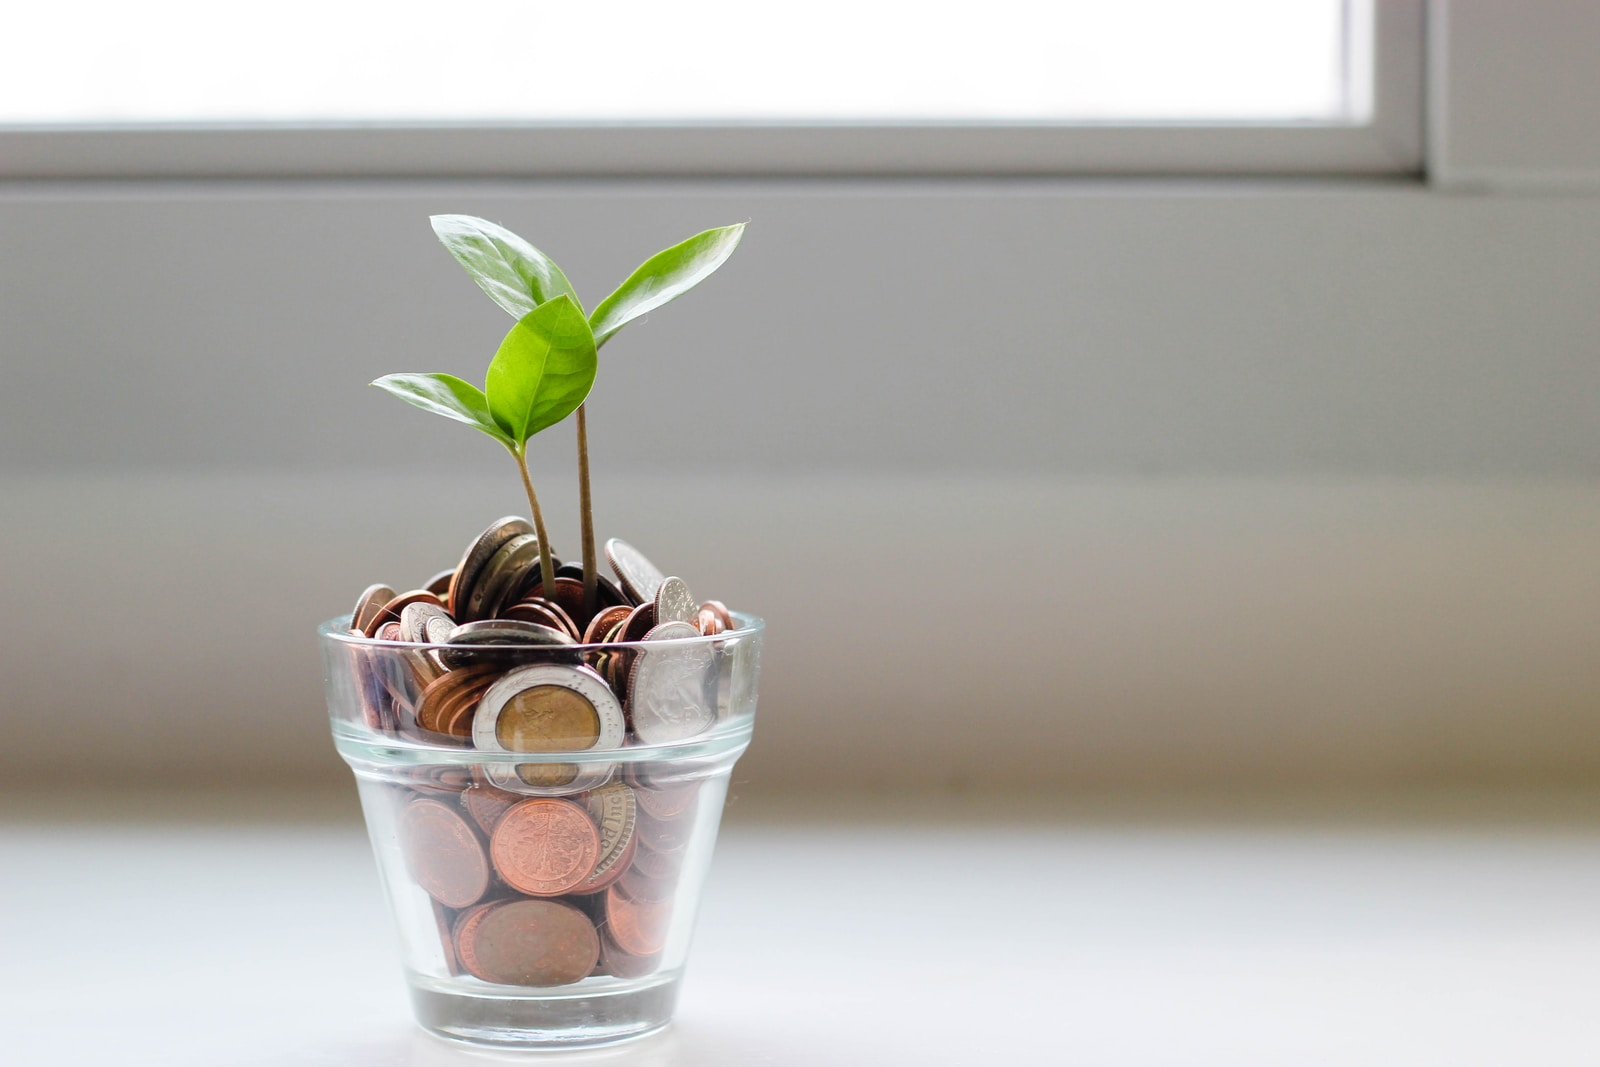 Avoid the Double Tax Trap When Making Non-Deductible IRA Contributions